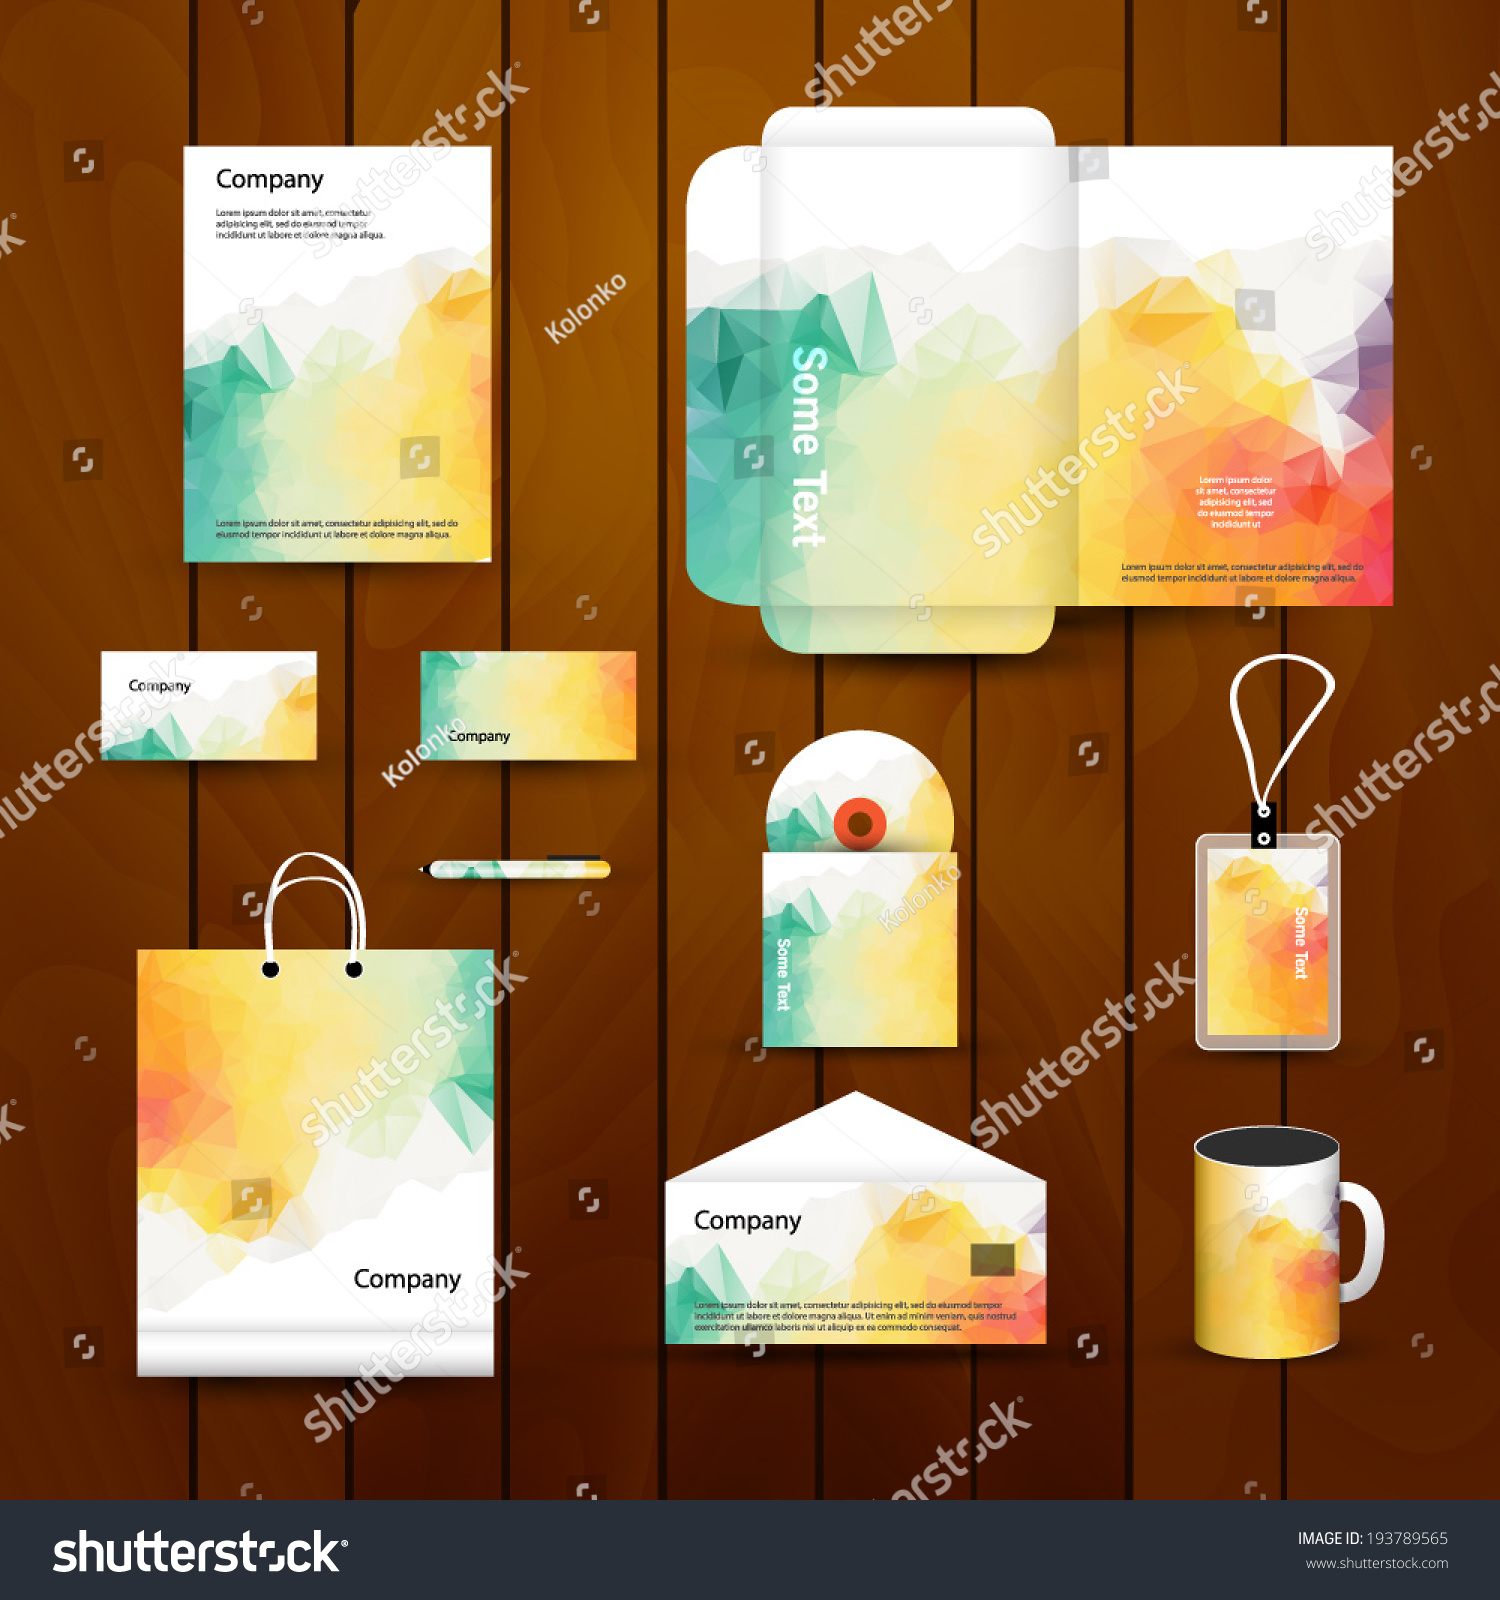 abstract corporate brand business identity design stock vector 193789565 shutterstock. Black Bedroom Furniture Sets. Home Design Ideas